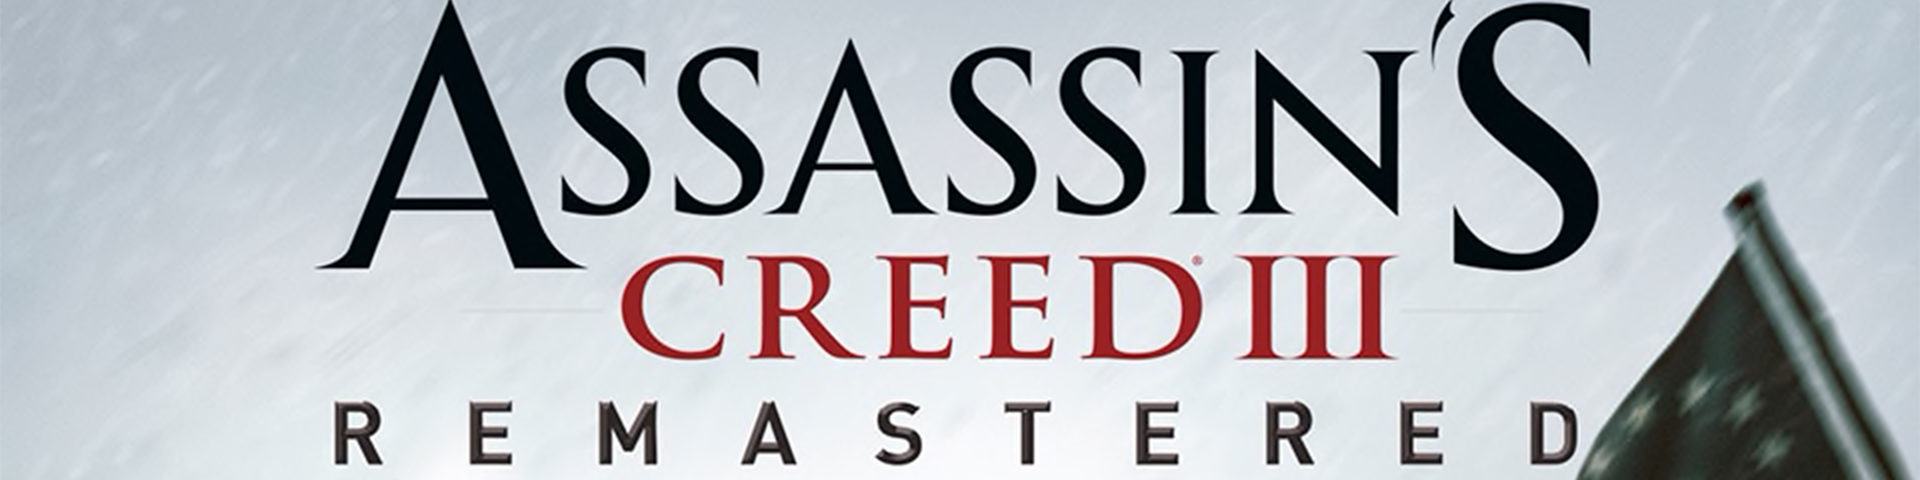 assassins creed 3 logo png